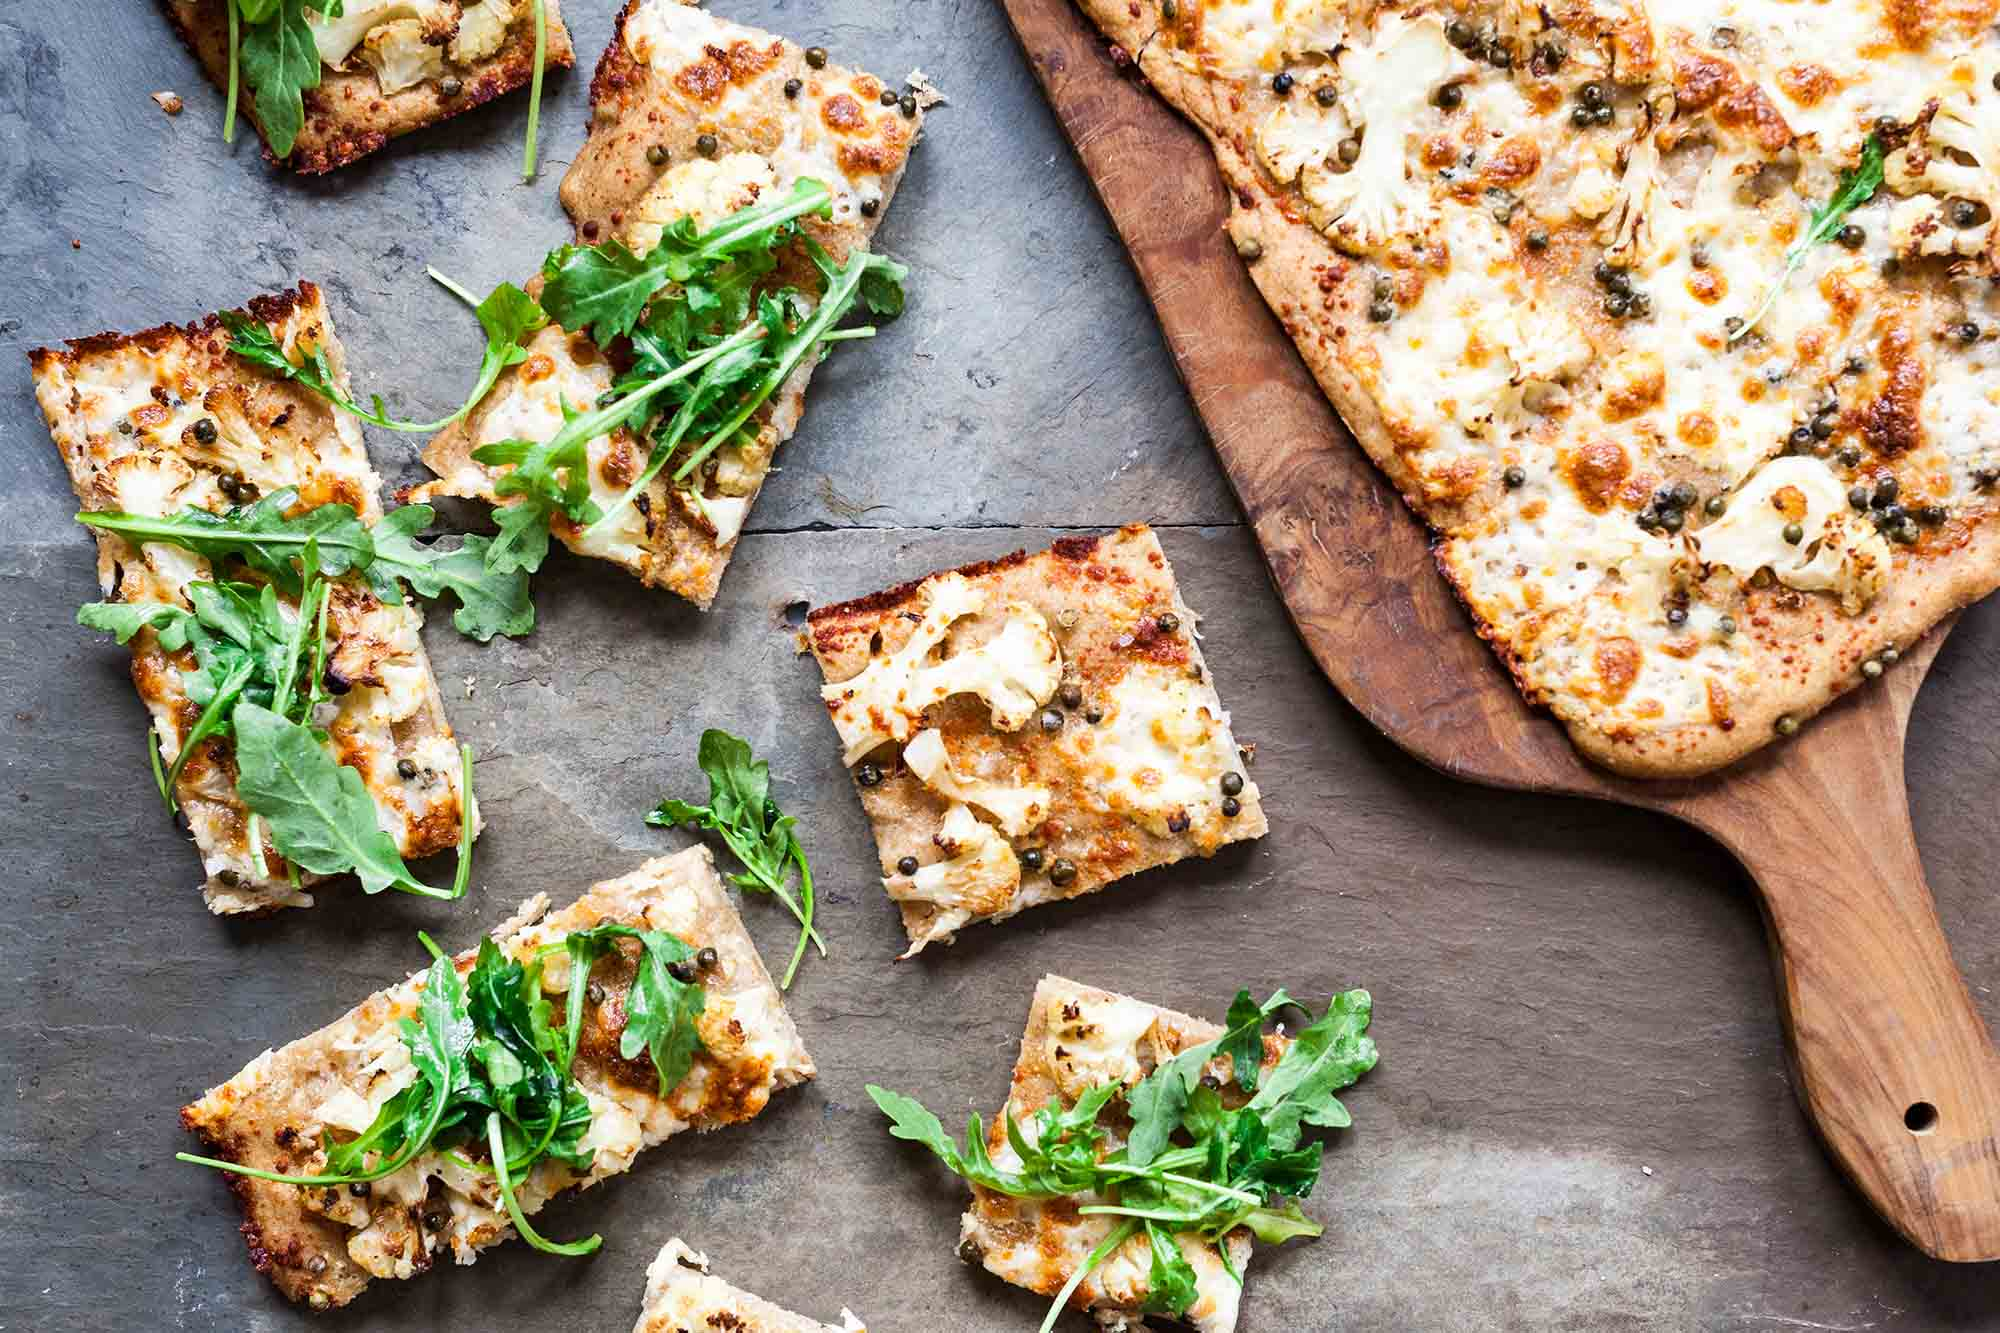 Sheet Pan Pizza with Roasted Cauliflower and Greens